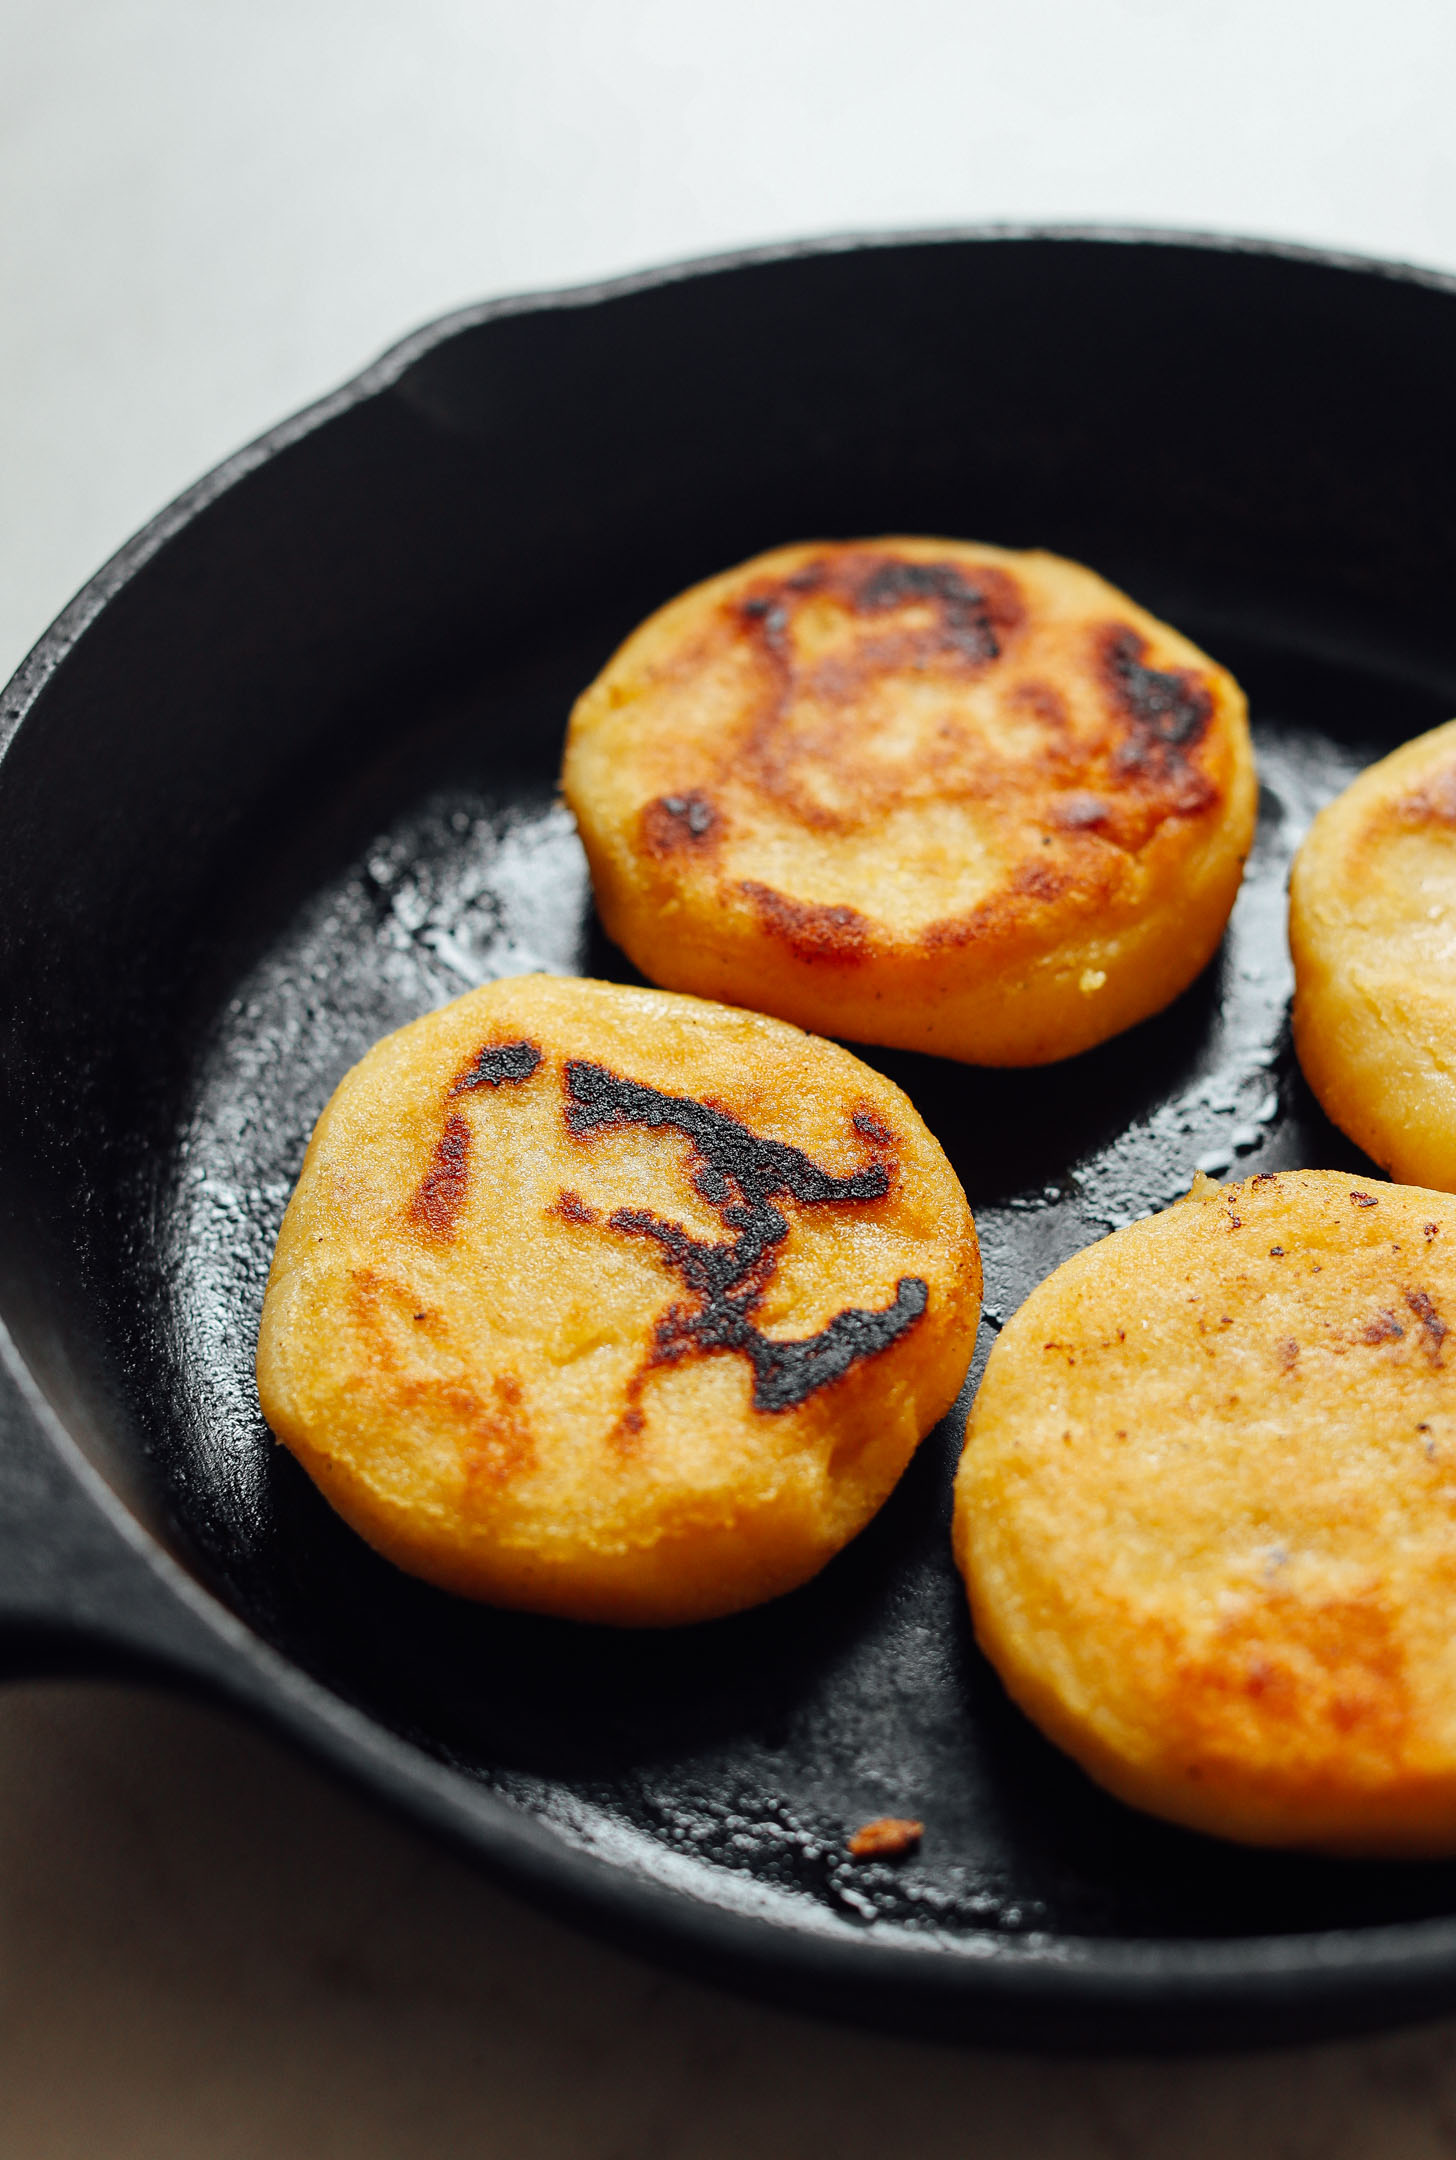 Cooking homemade gluten-free Arepas in a cast-iron skillet